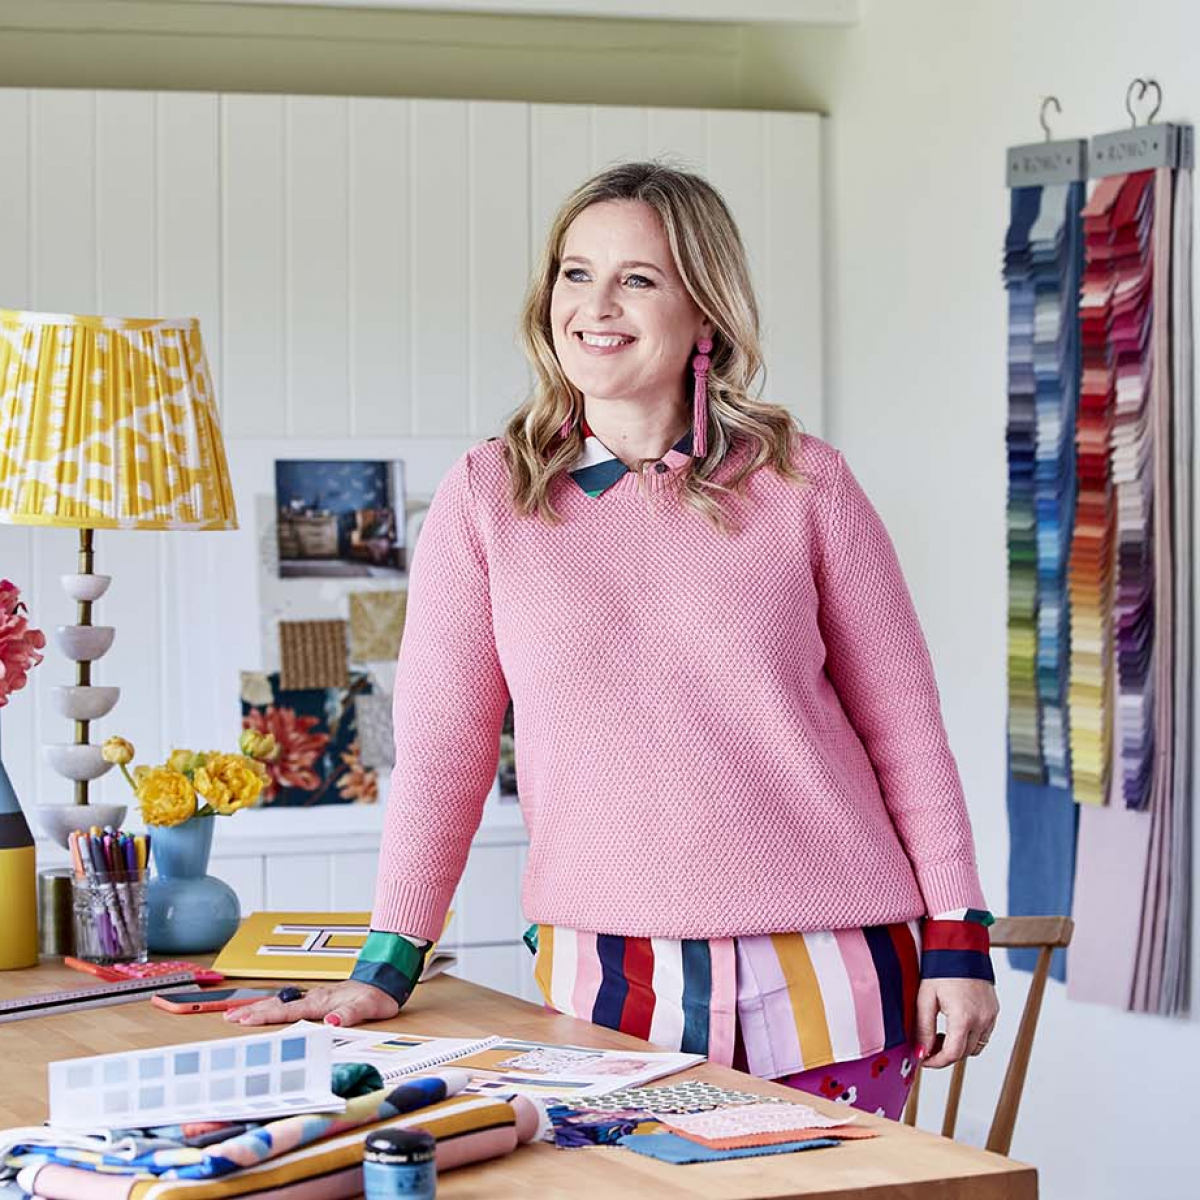 Colour expert Sophie Robinson shares her new intentions and upcoming projects following the summer break. Ready and inspired by her new colourful home office. #homeoffice #newintentions #sophierobinson